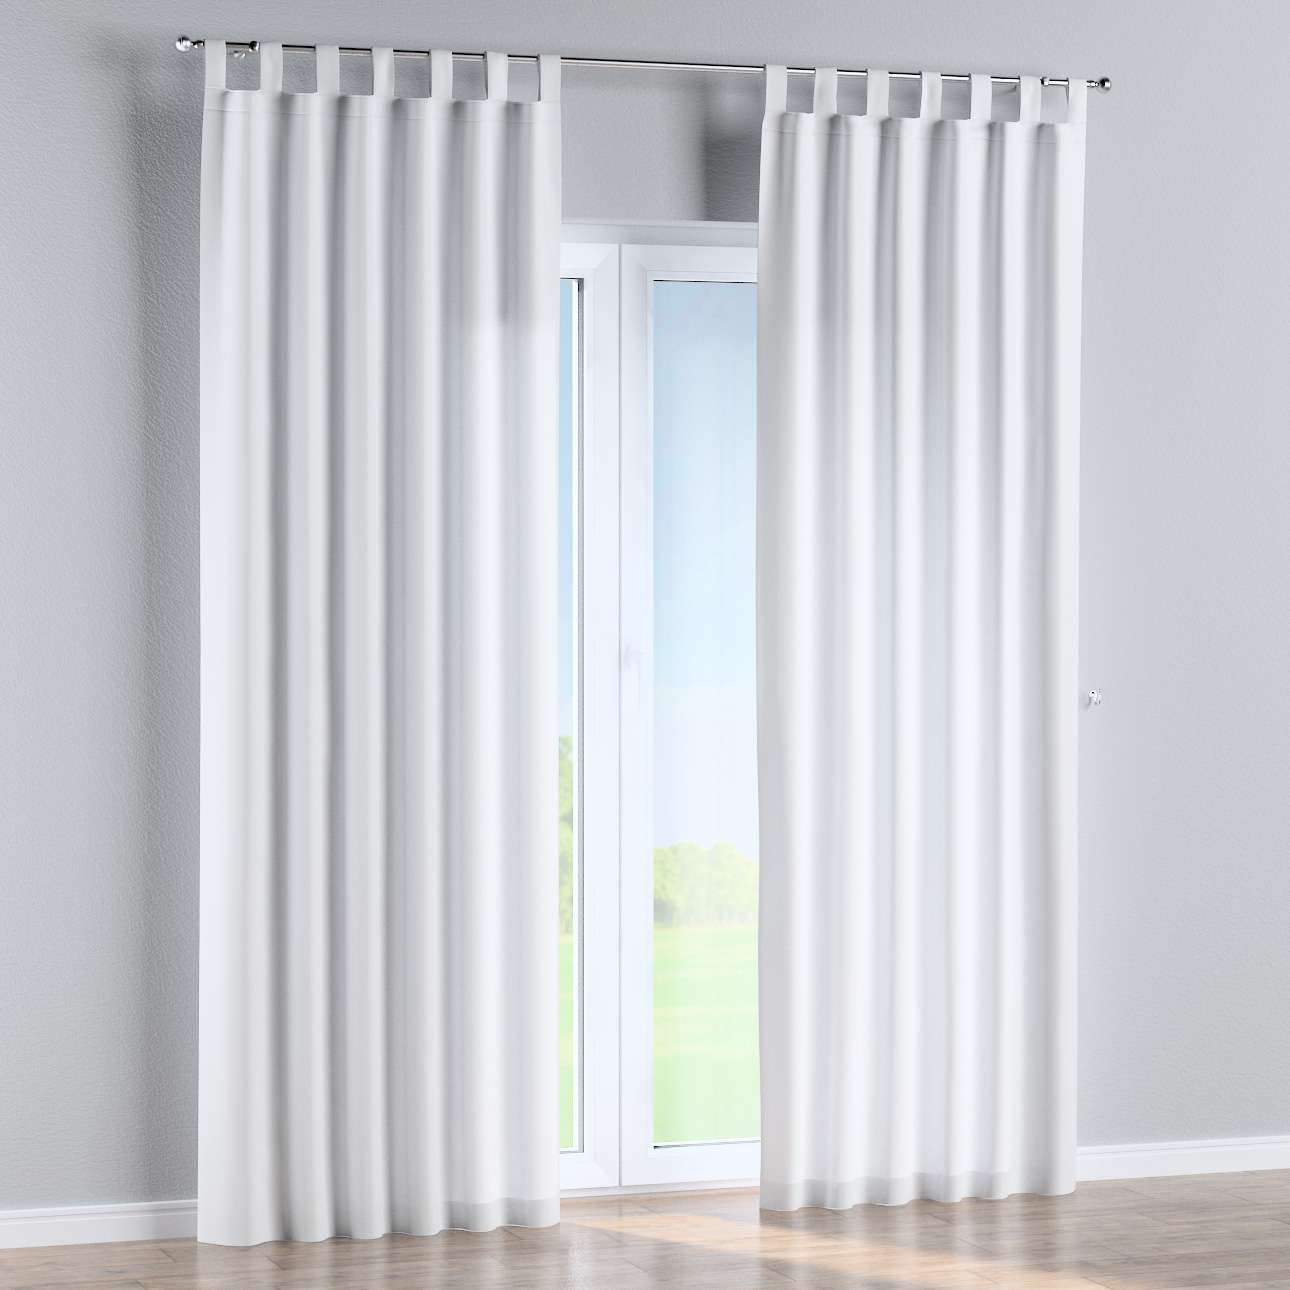 Tab top curtains in collection Damasco, fabric: 141-78